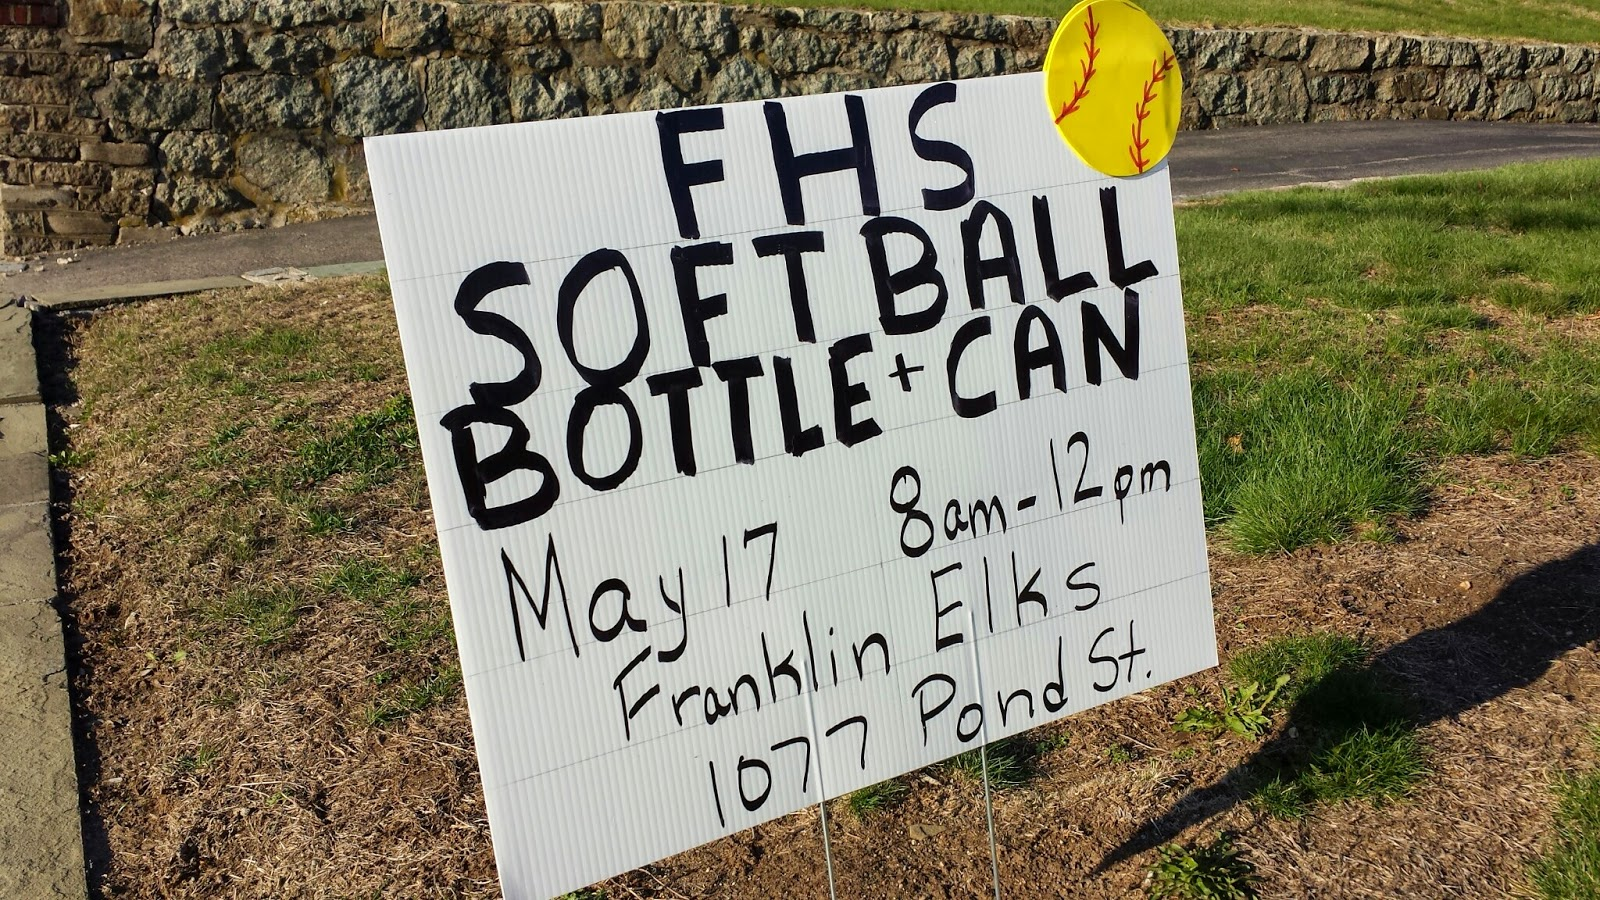 FHS Softball - Bottle/Can Drive - Sat May 17th